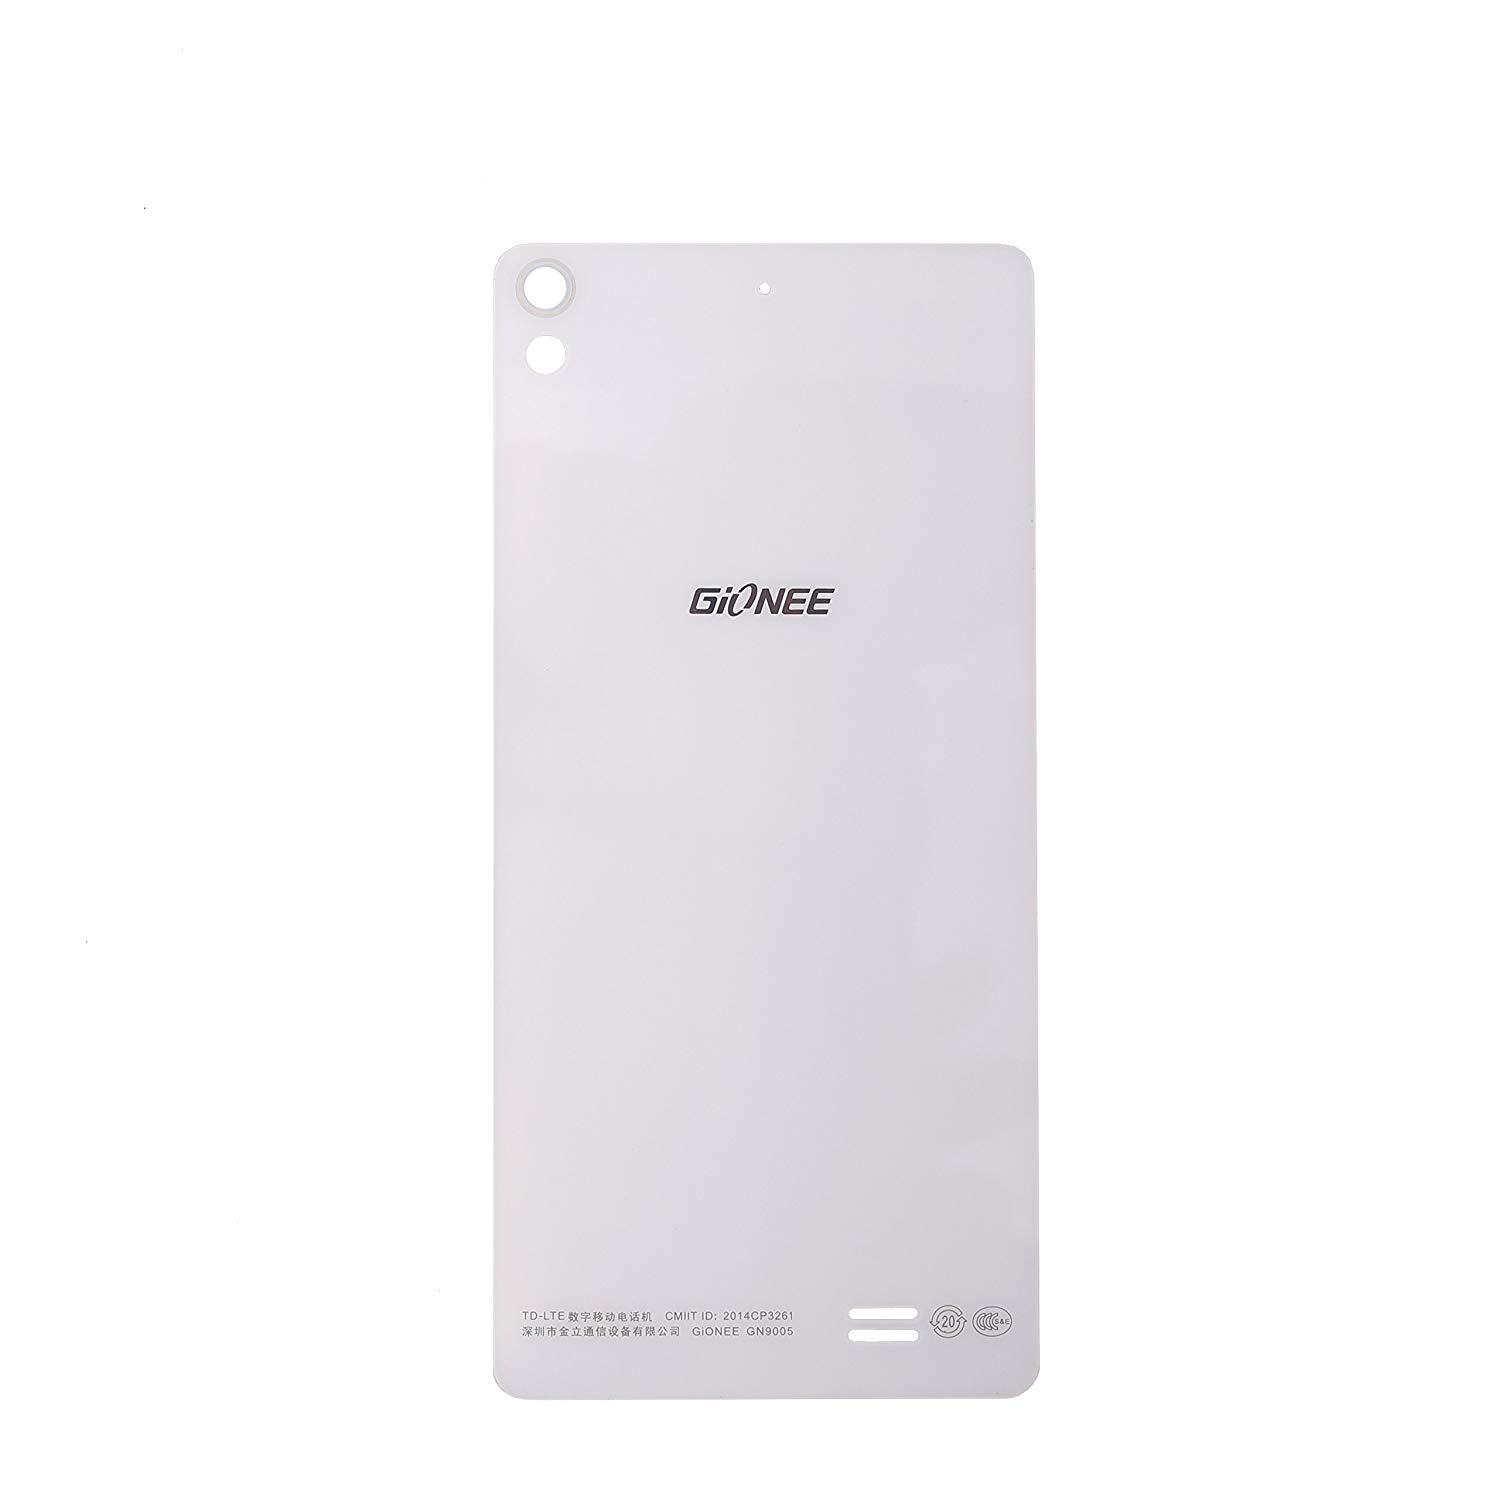 CellPhonez.in - Replacement Housing Back Panel for Gionee Elife S5.1